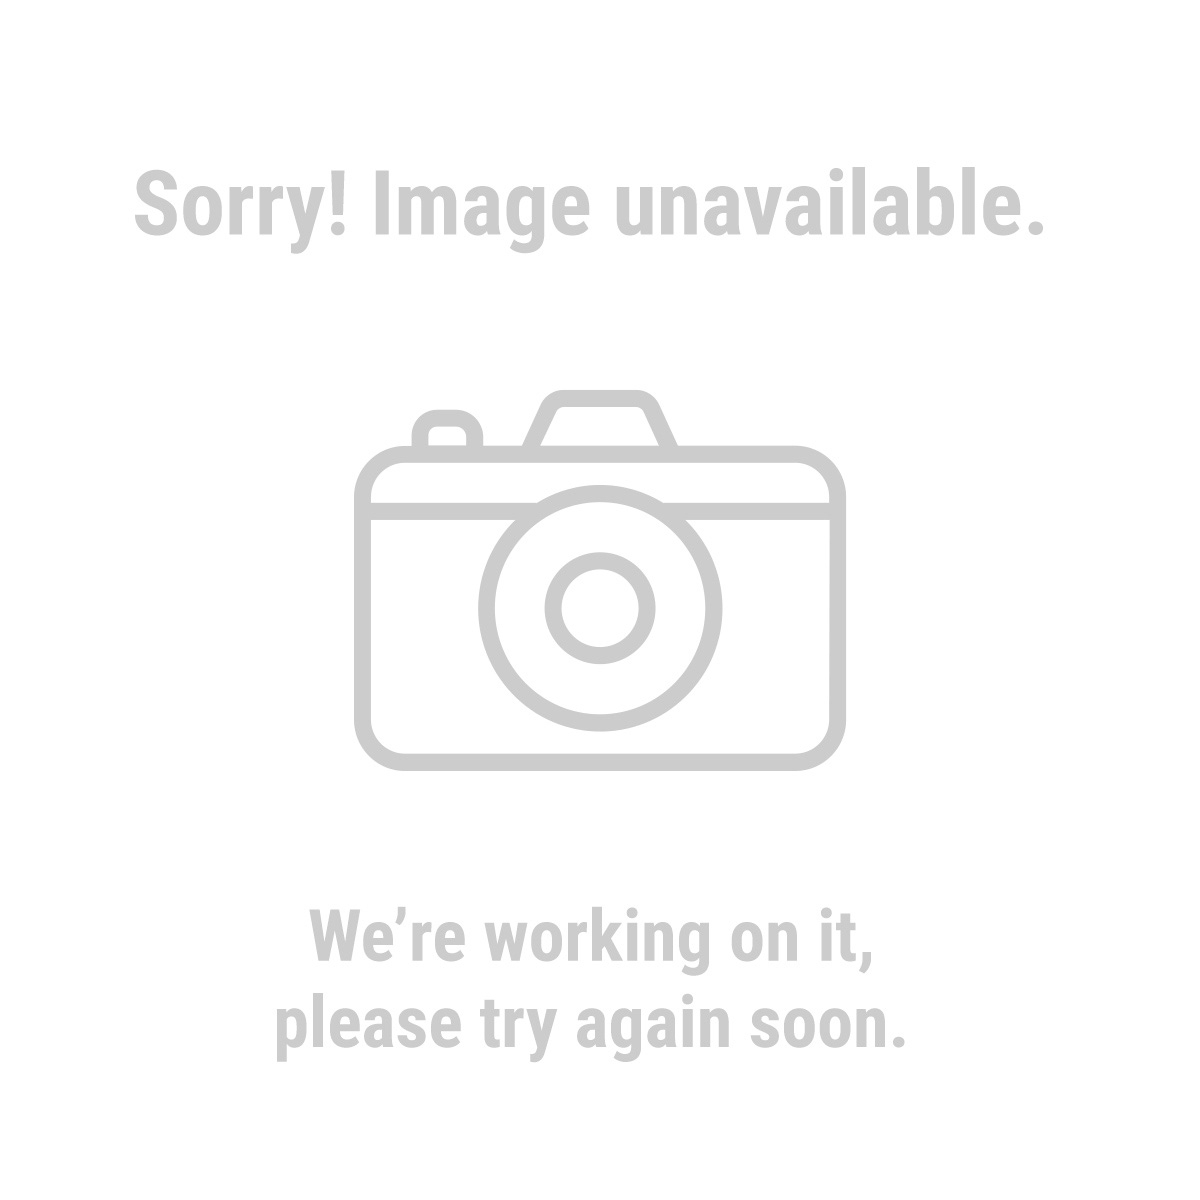 93740 15 Piece Super Snap Grommet Value Pack